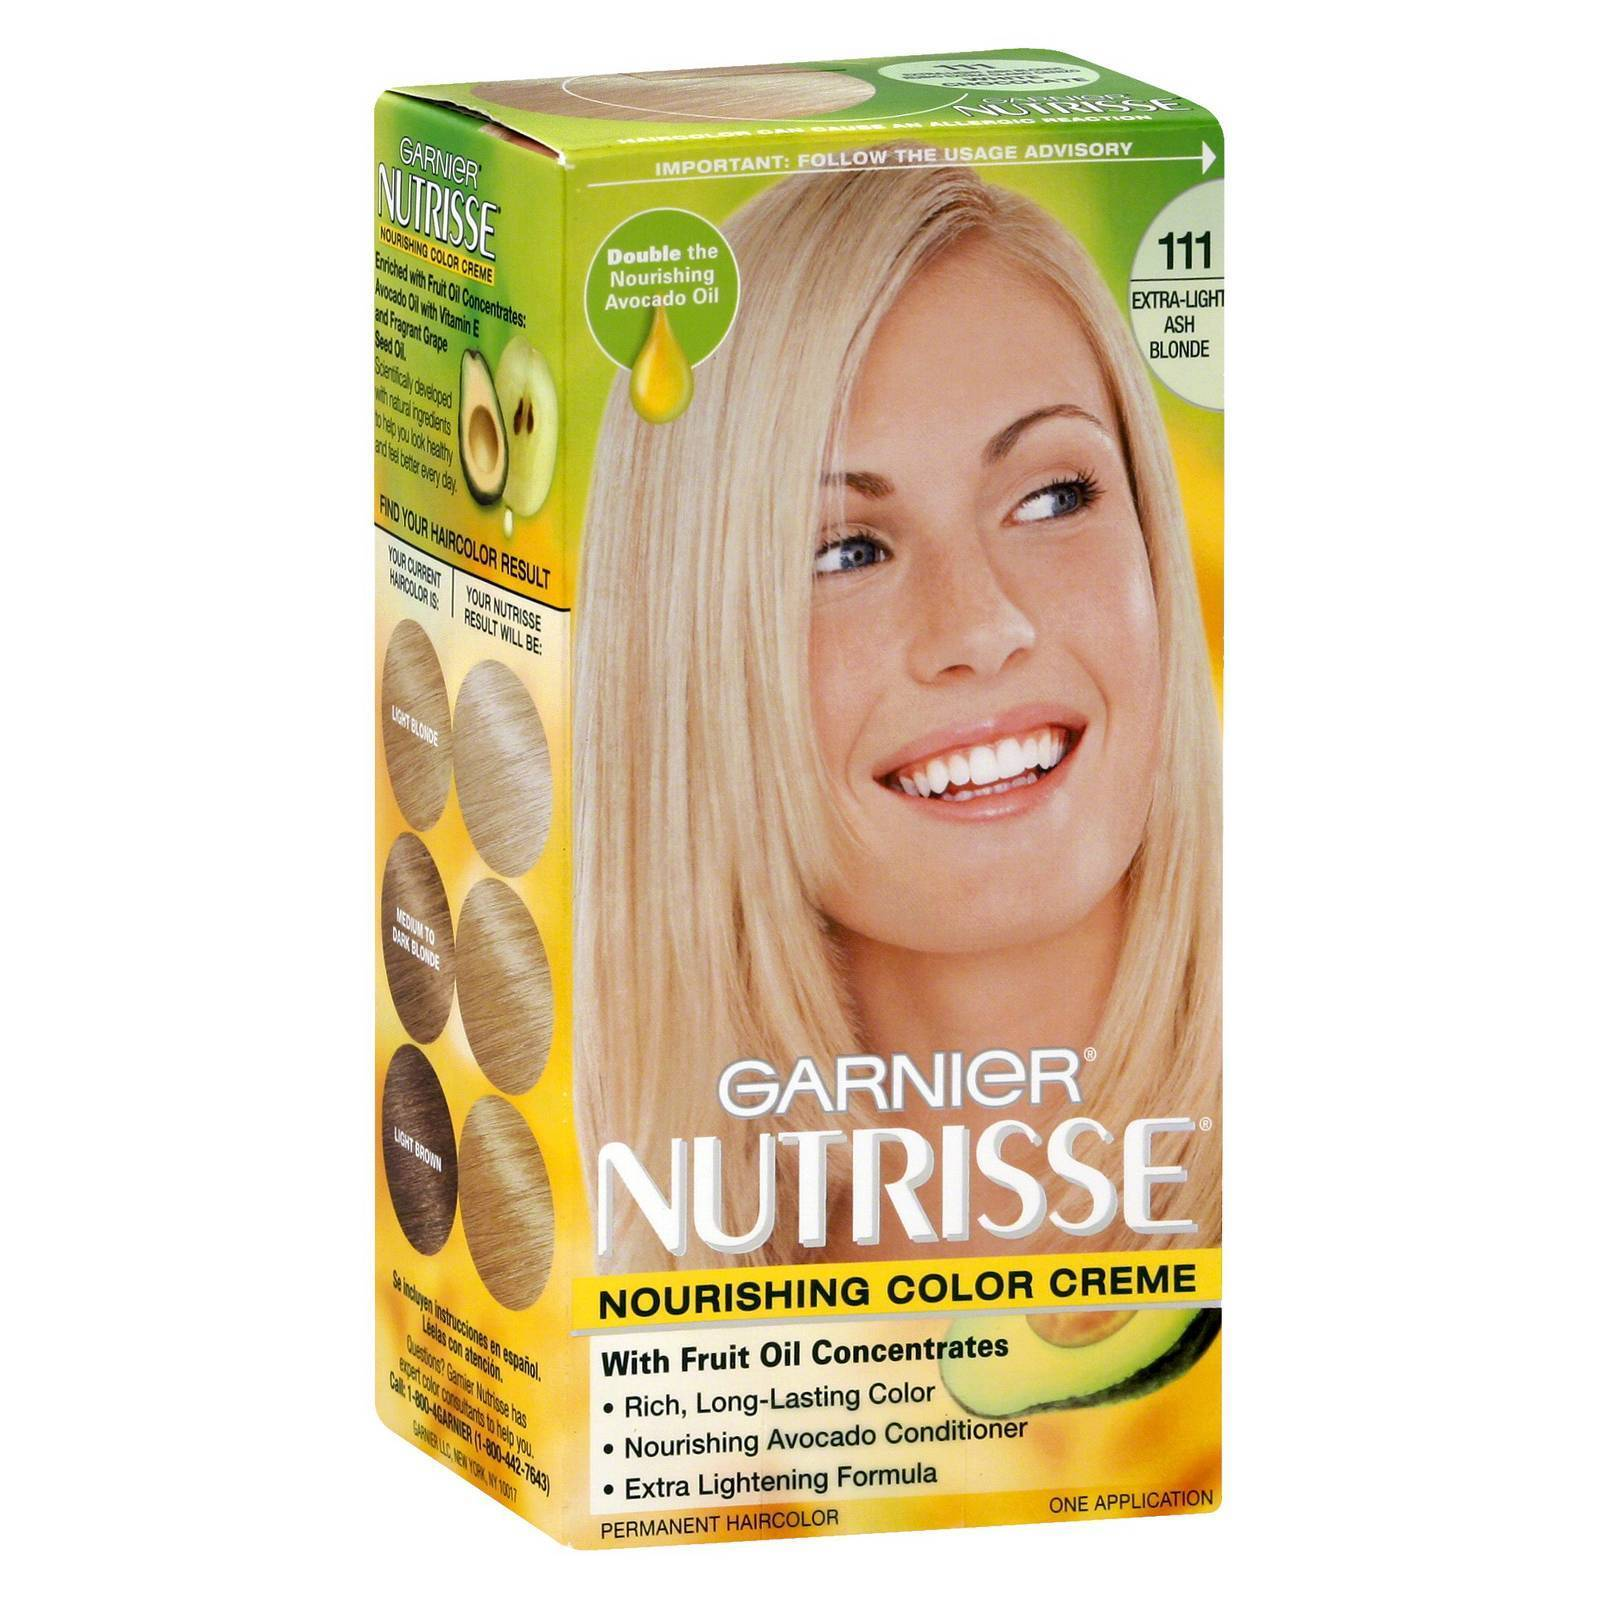 3 Pk Garnier Nutrisse Extra Light Ash Blonde 111 White Chocolate Ebay